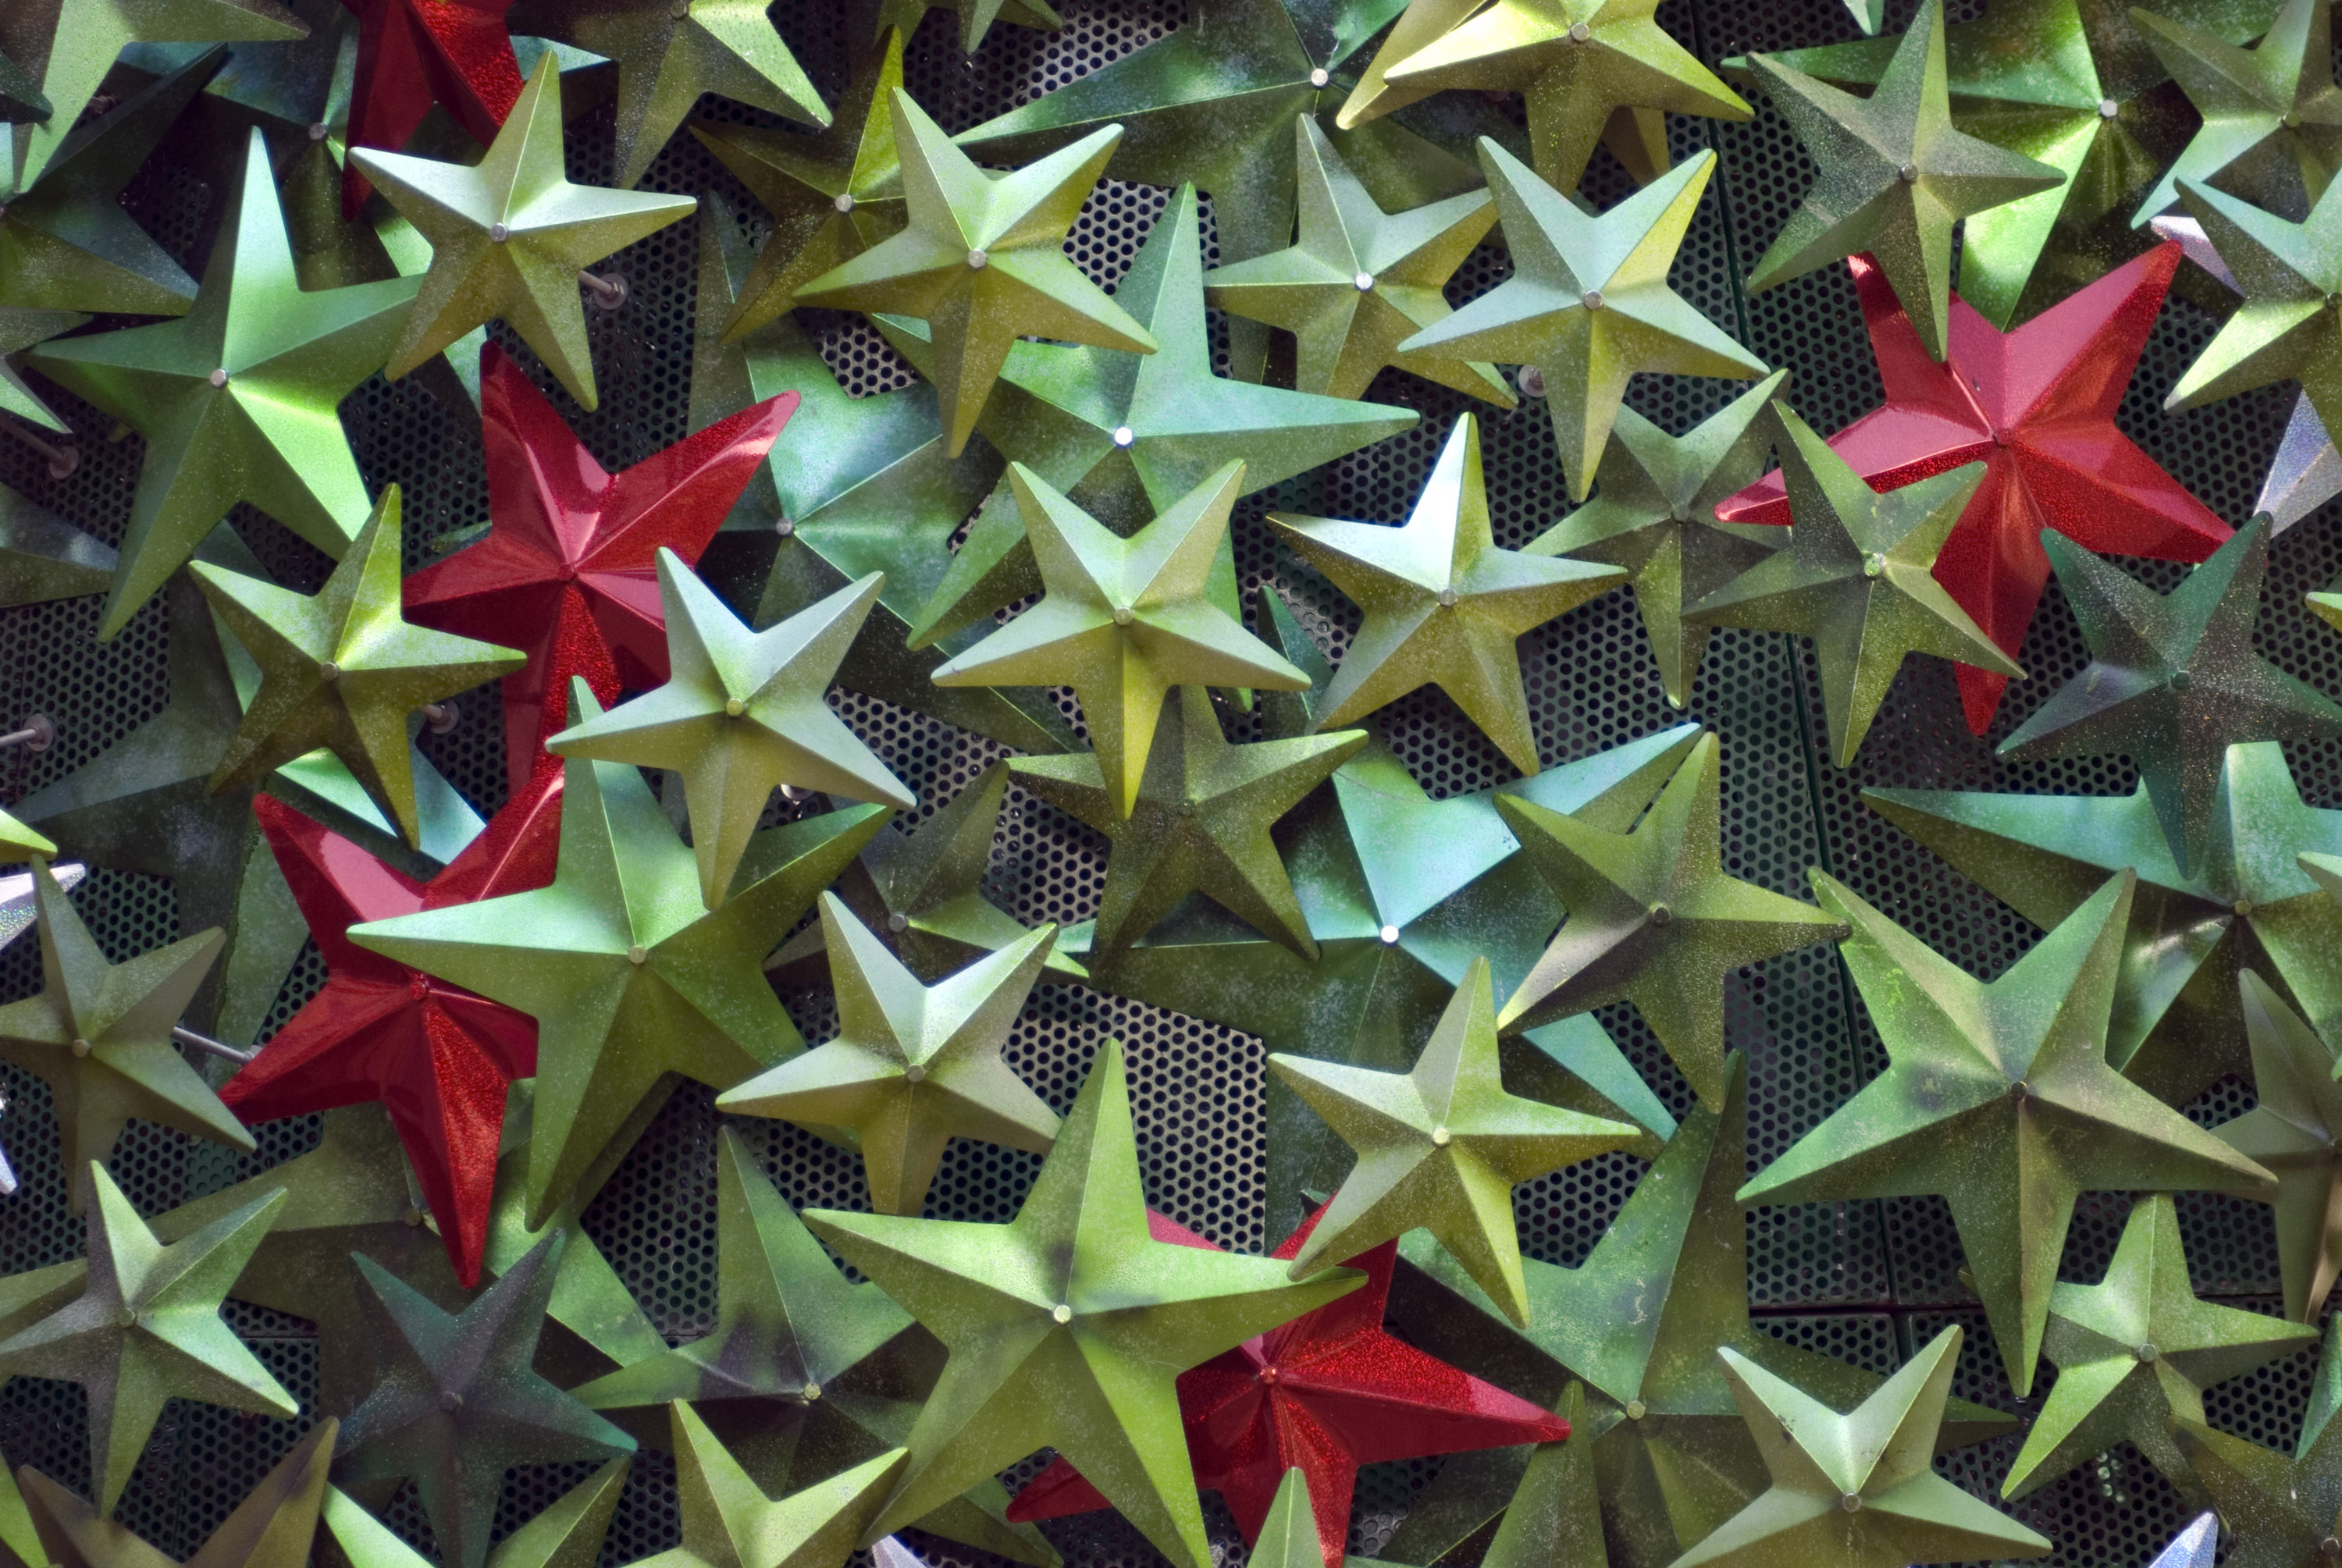 an assortment of festive star shaped decorations in metallic green and red